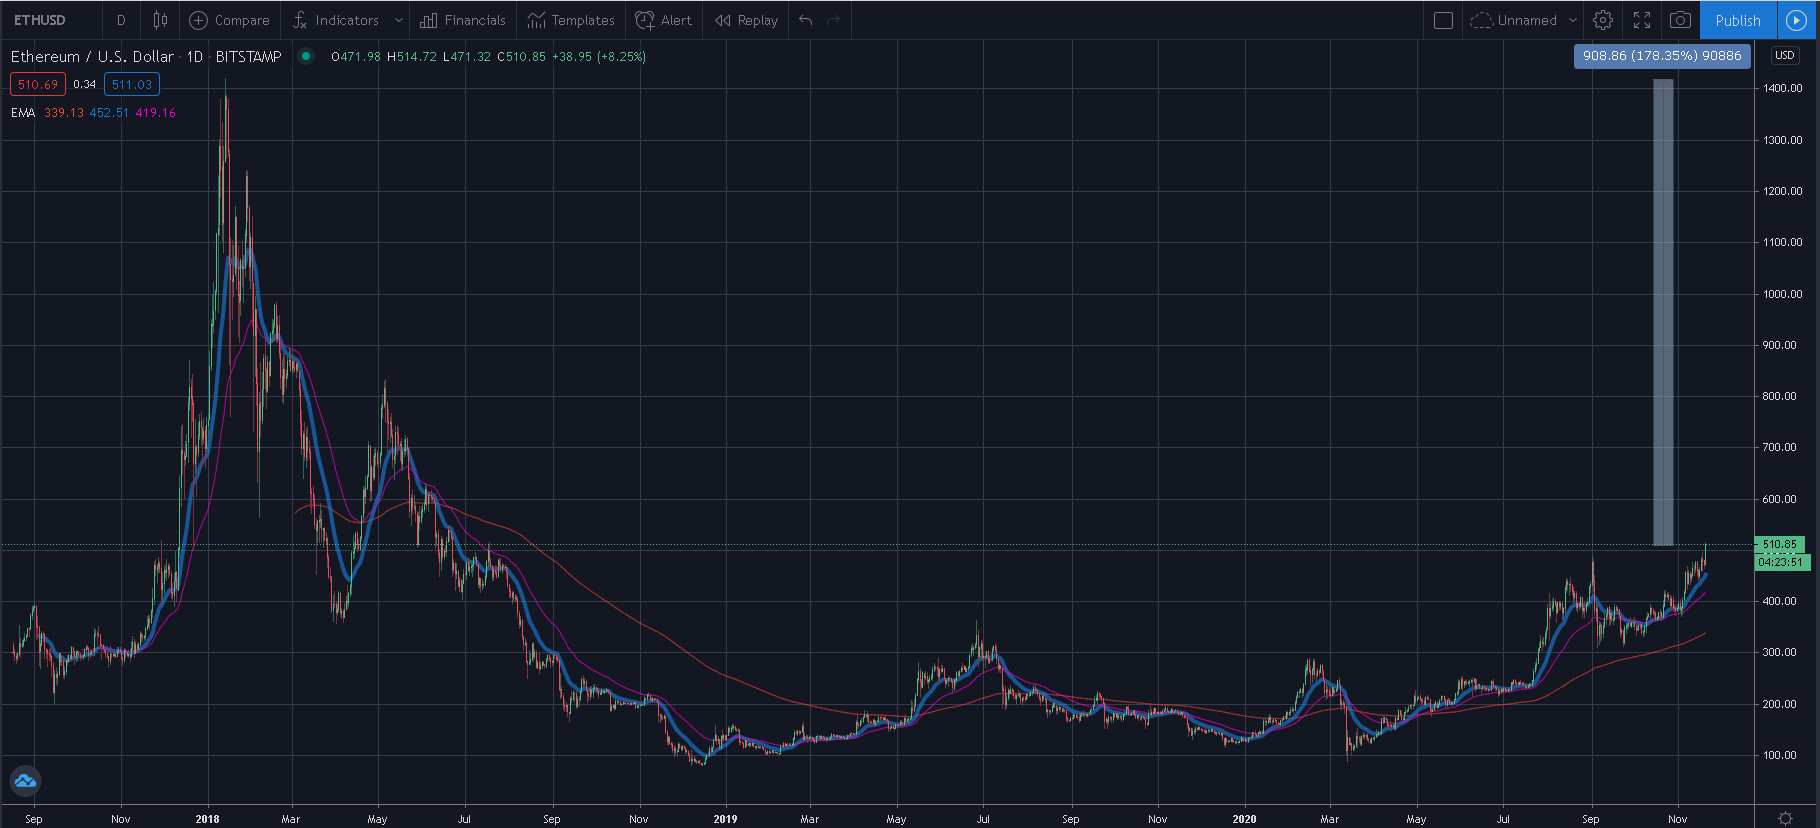 Ethereum Chart - Altcoins will reach all time high on 2021